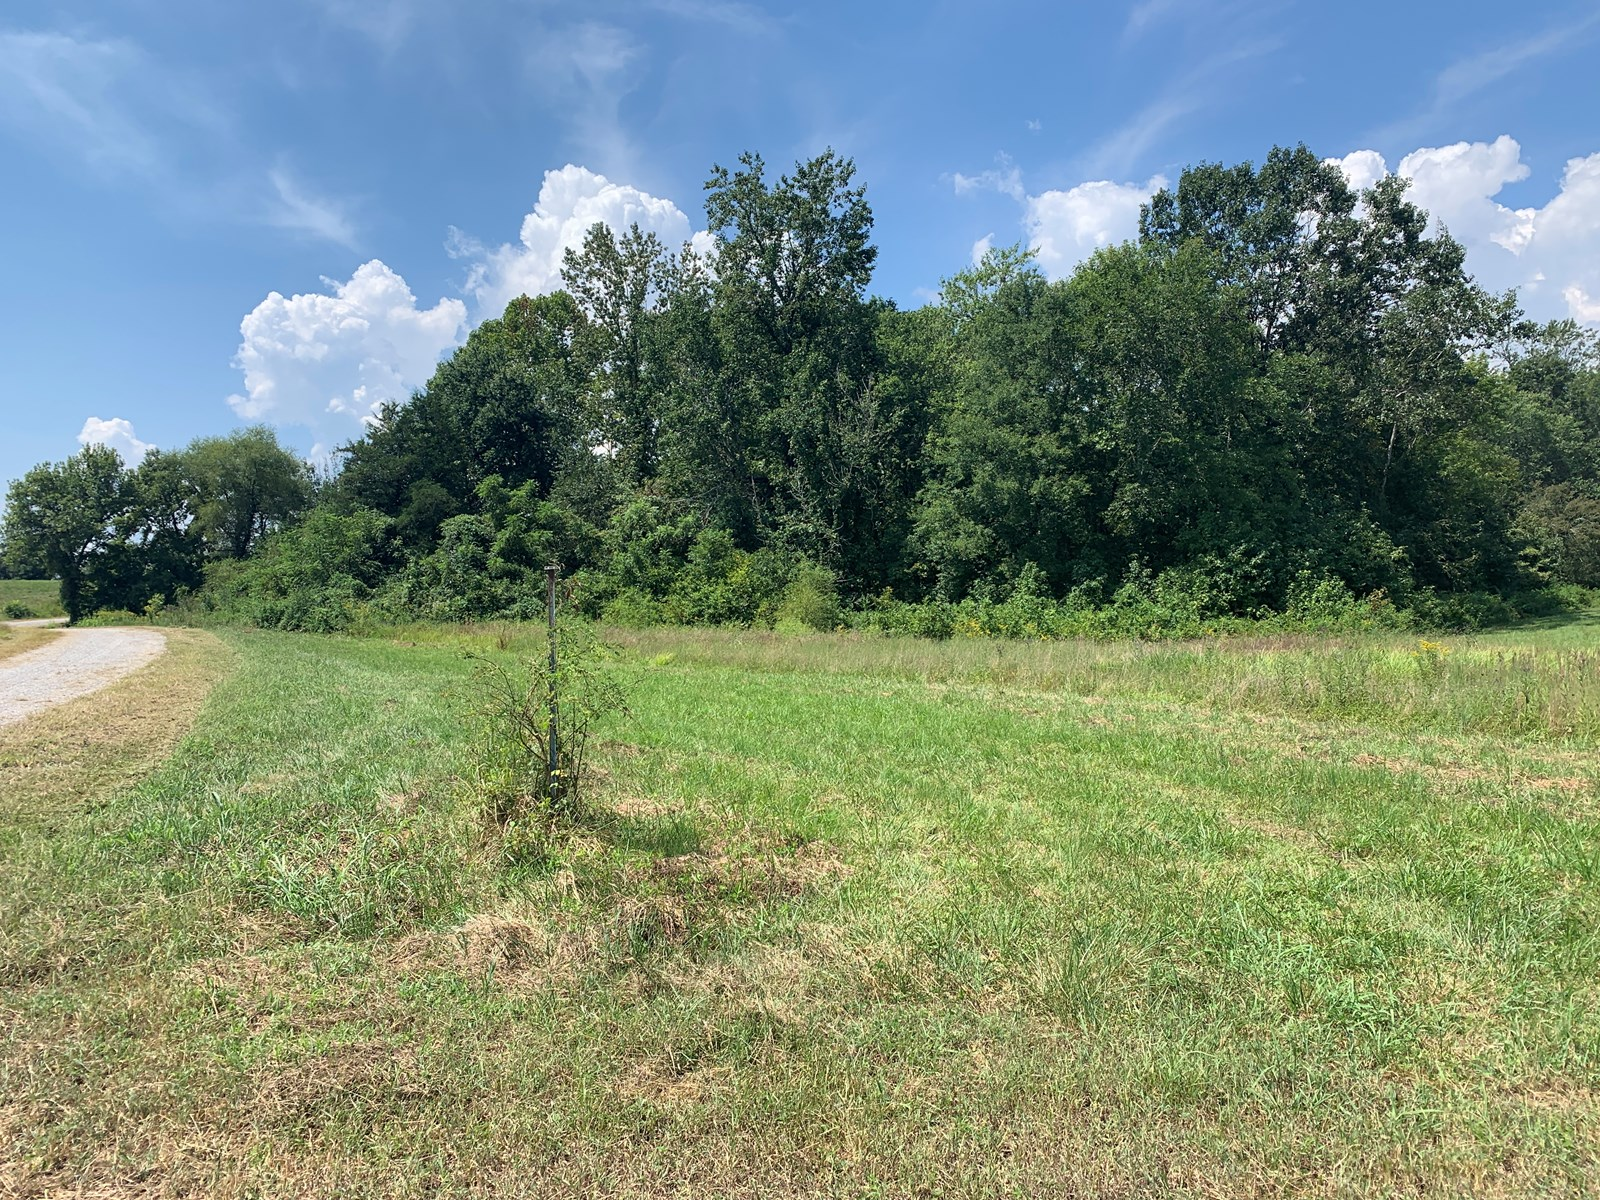 Land for sale in Burkesville, Kentucky